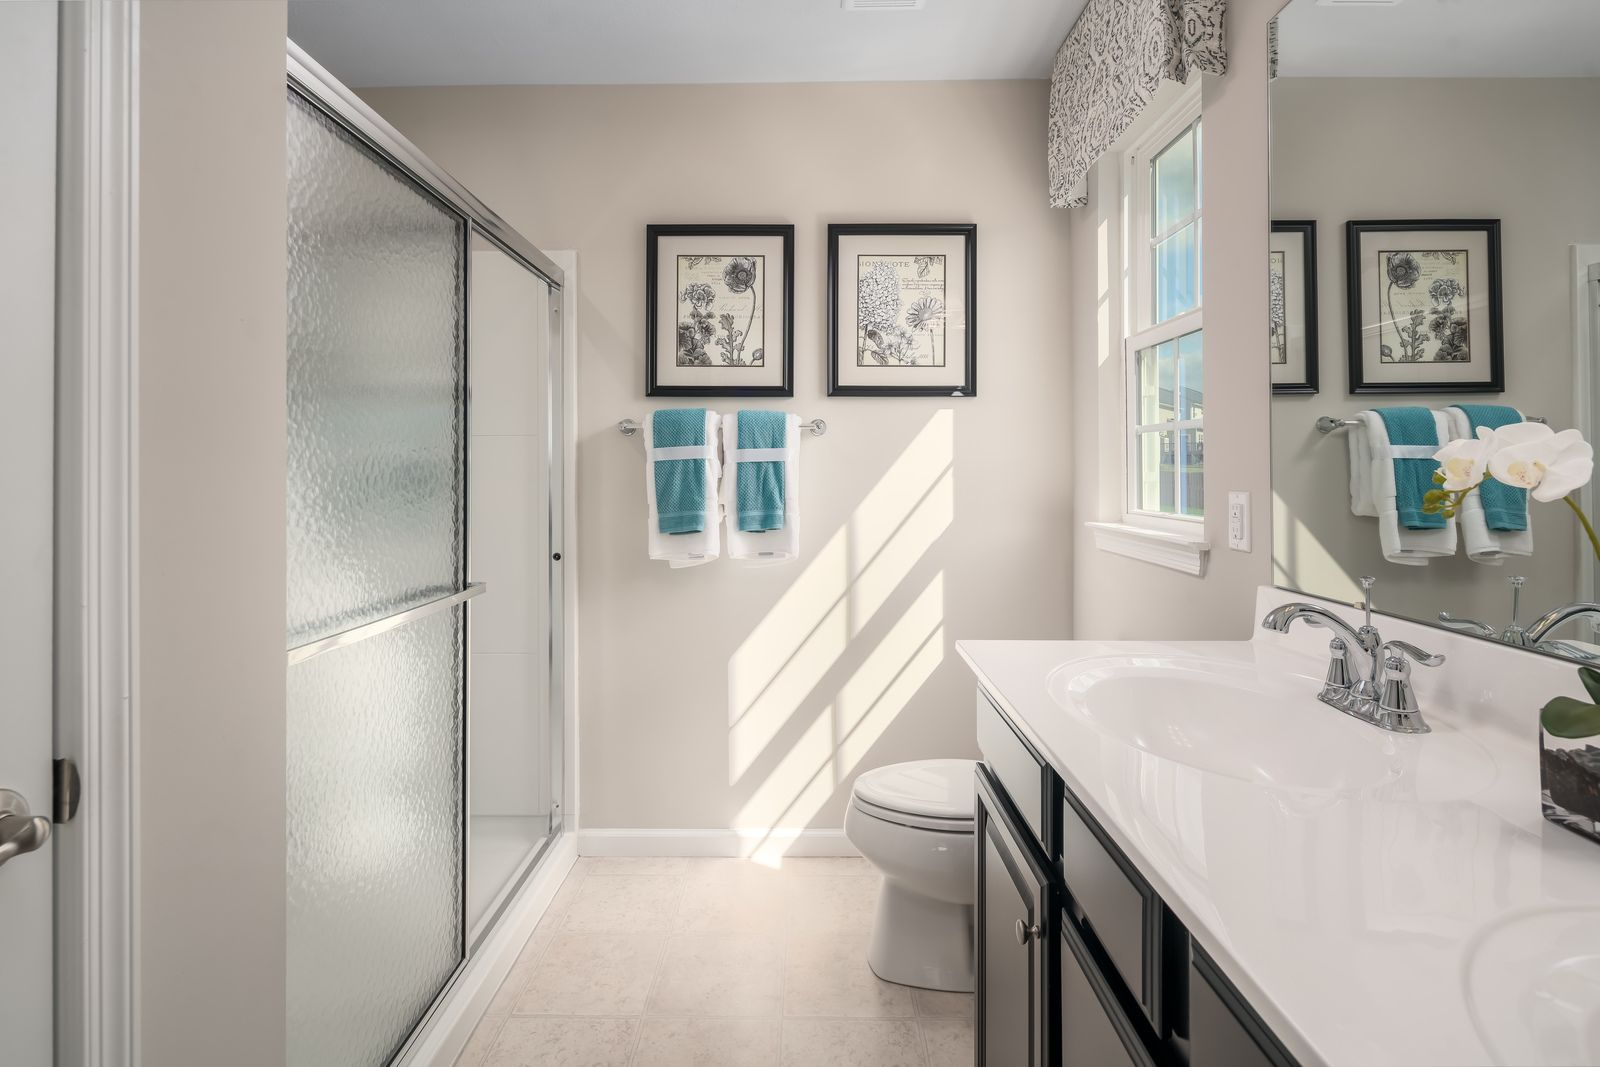 Bathroom featured in the Allegheny By Ryan Homes in Dover, DE